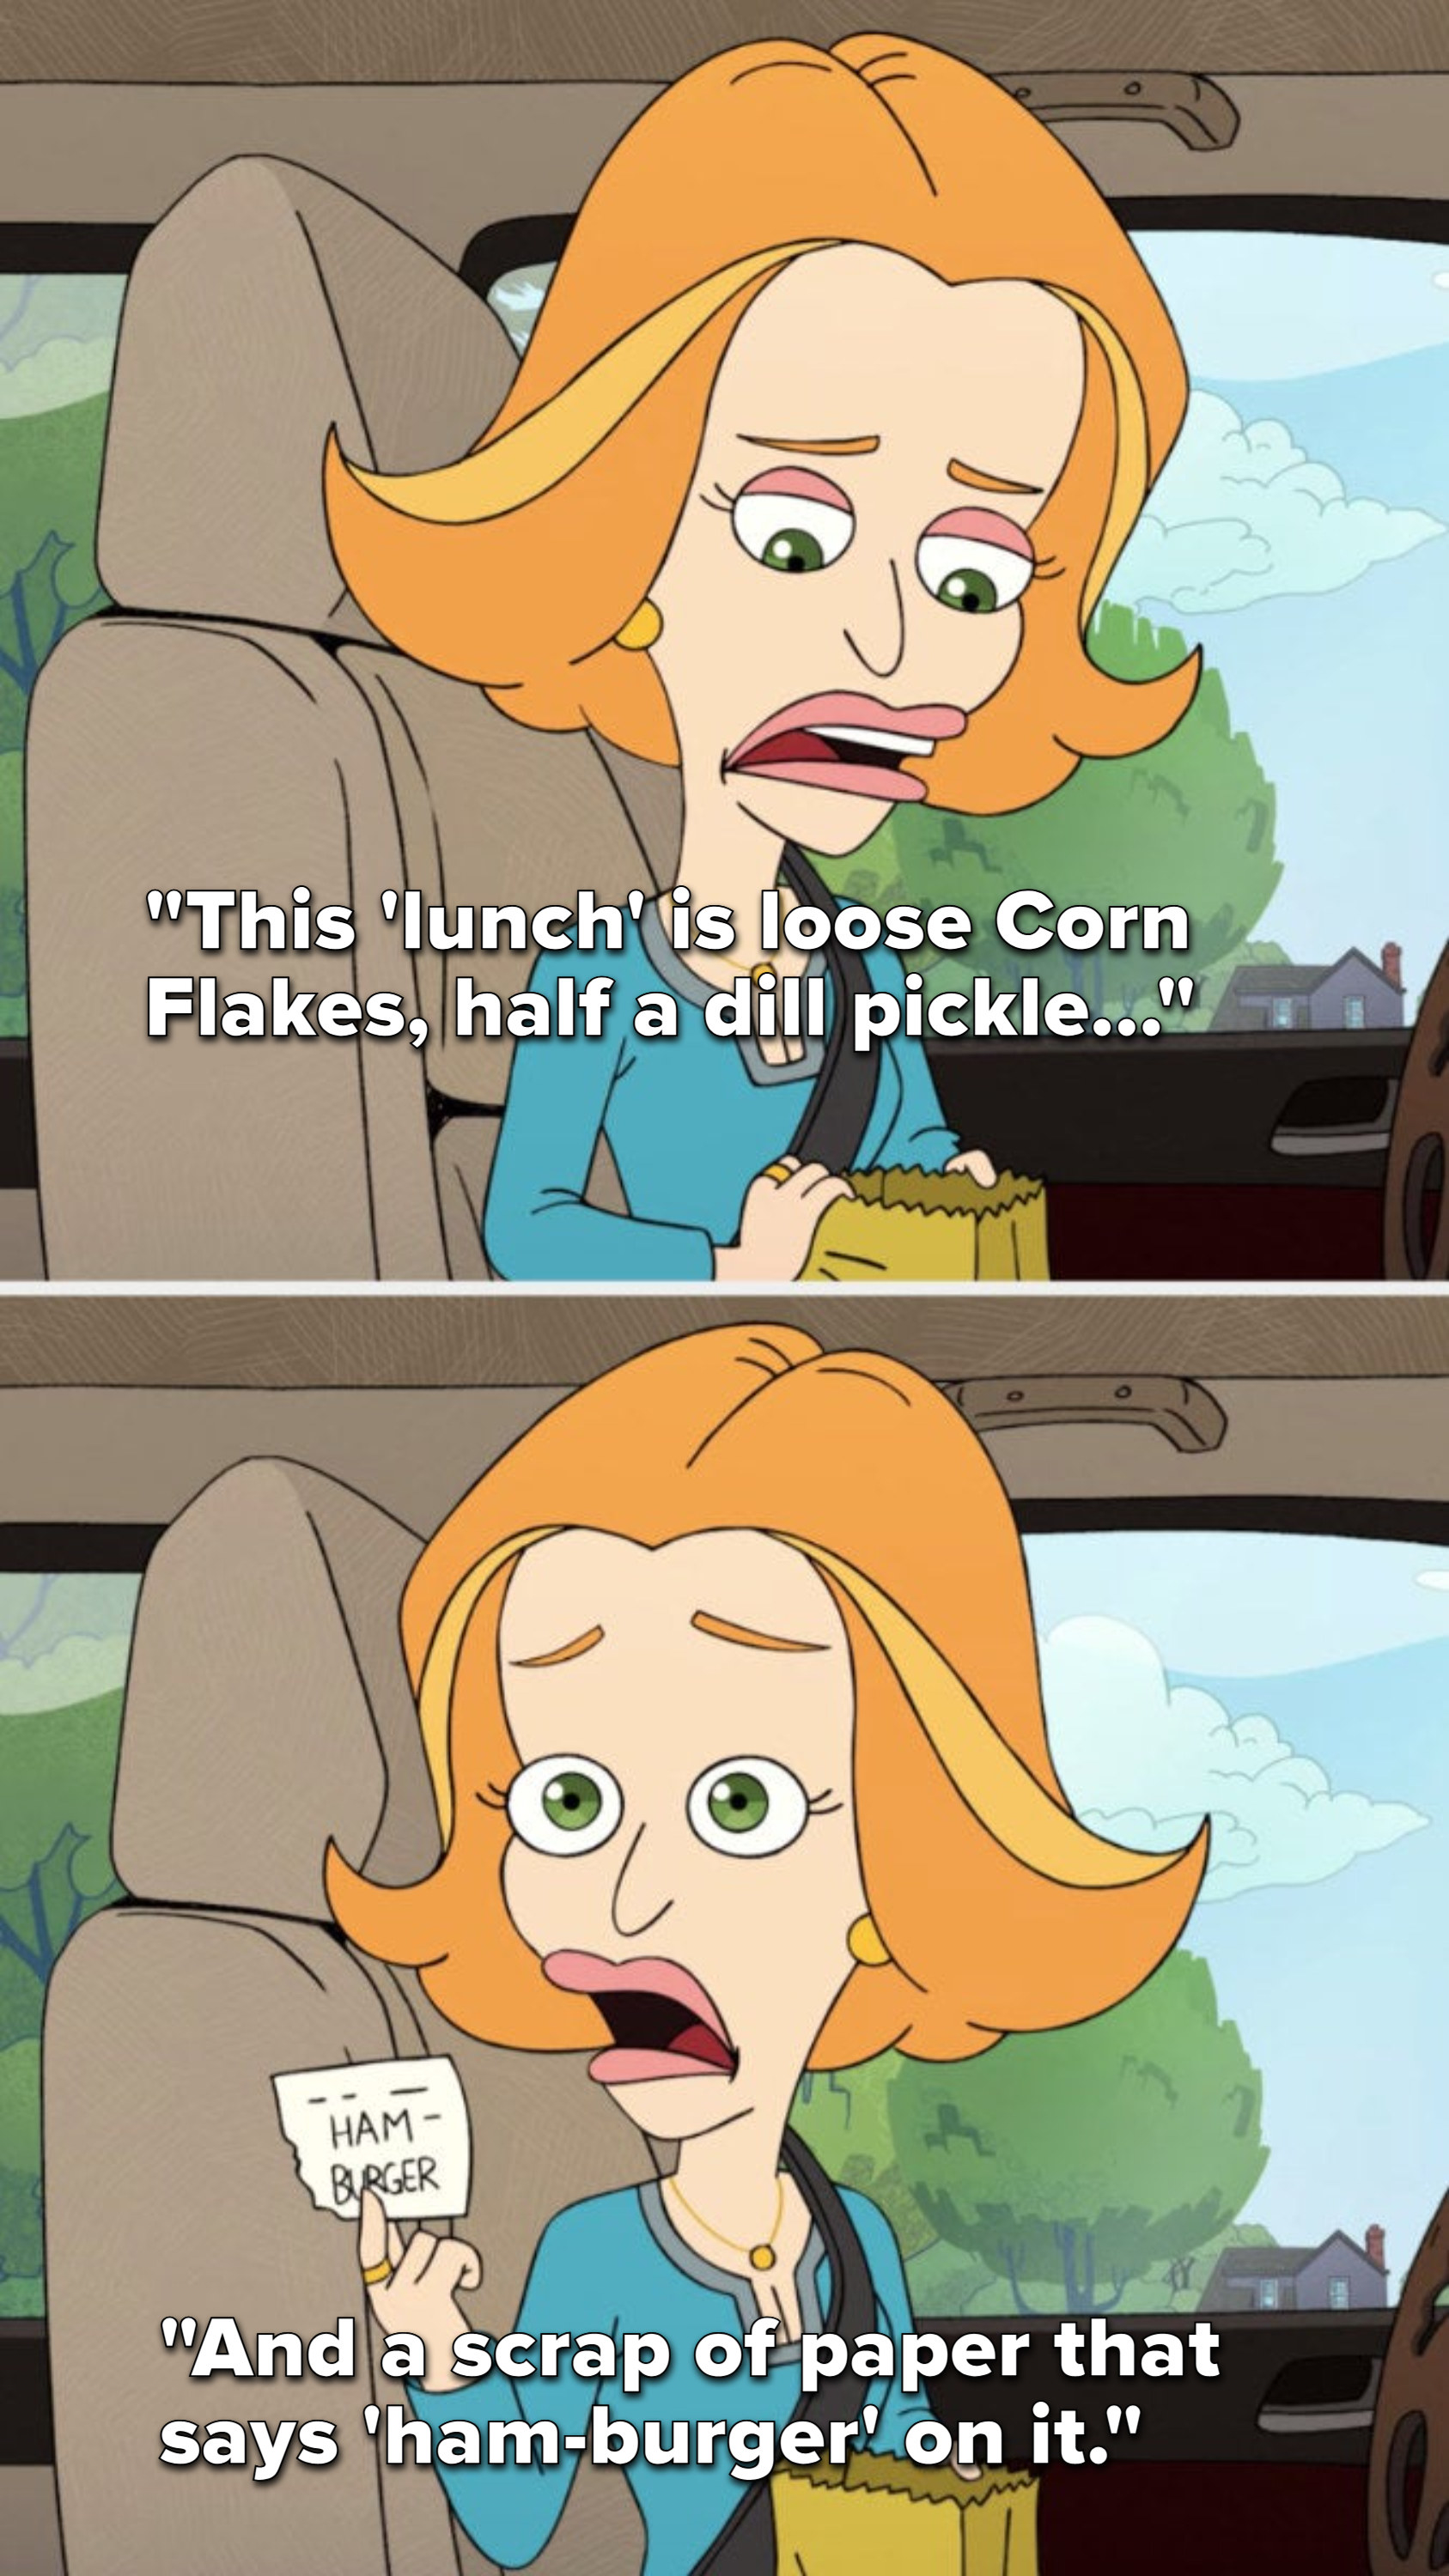 """Nick's mom says, """"This 'lunch' is loose Corn Flakes, half a dill pickle, and a scrap of paper that says, 'ham burger' on it,' and she holds up the scrap of paper"""